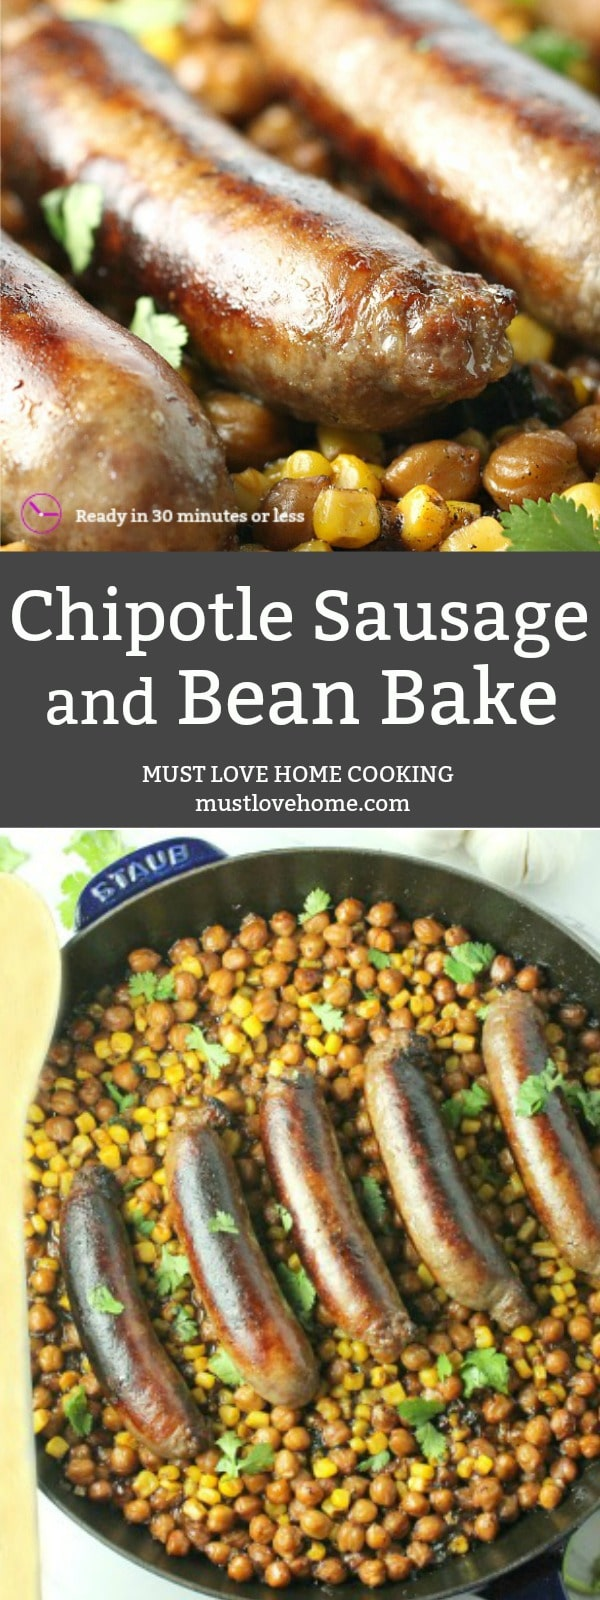 Chipotle Sausage and Bean Bake is crispy, mouthwatering sausages,  beans and corn smothered in creamy chipotle puree. A hearty and satisfying meal in less than 30 minutes!